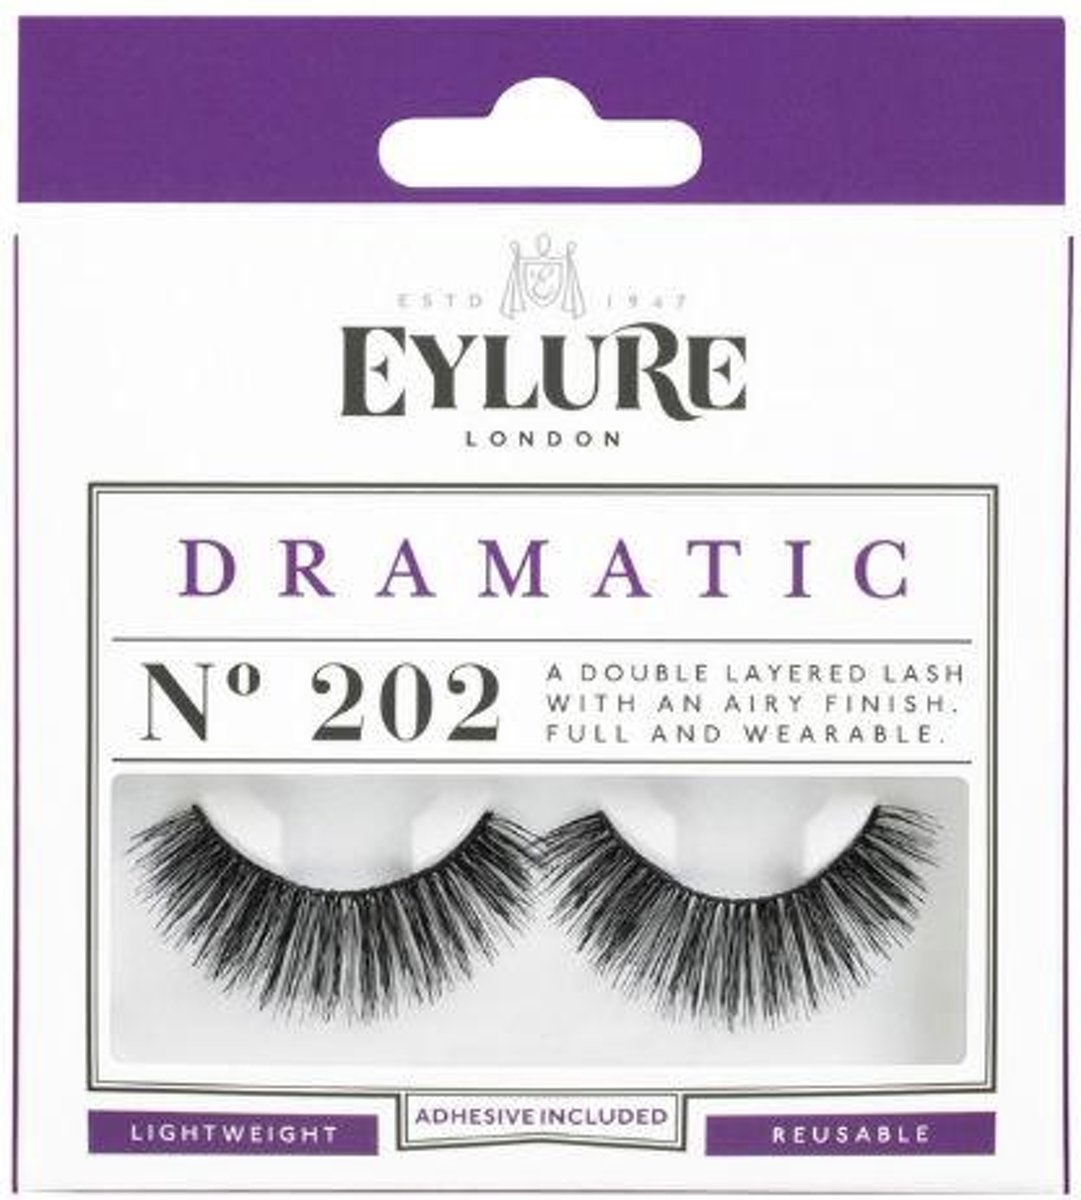 Eylure Dramatic - No. 202 - Nepwimpers